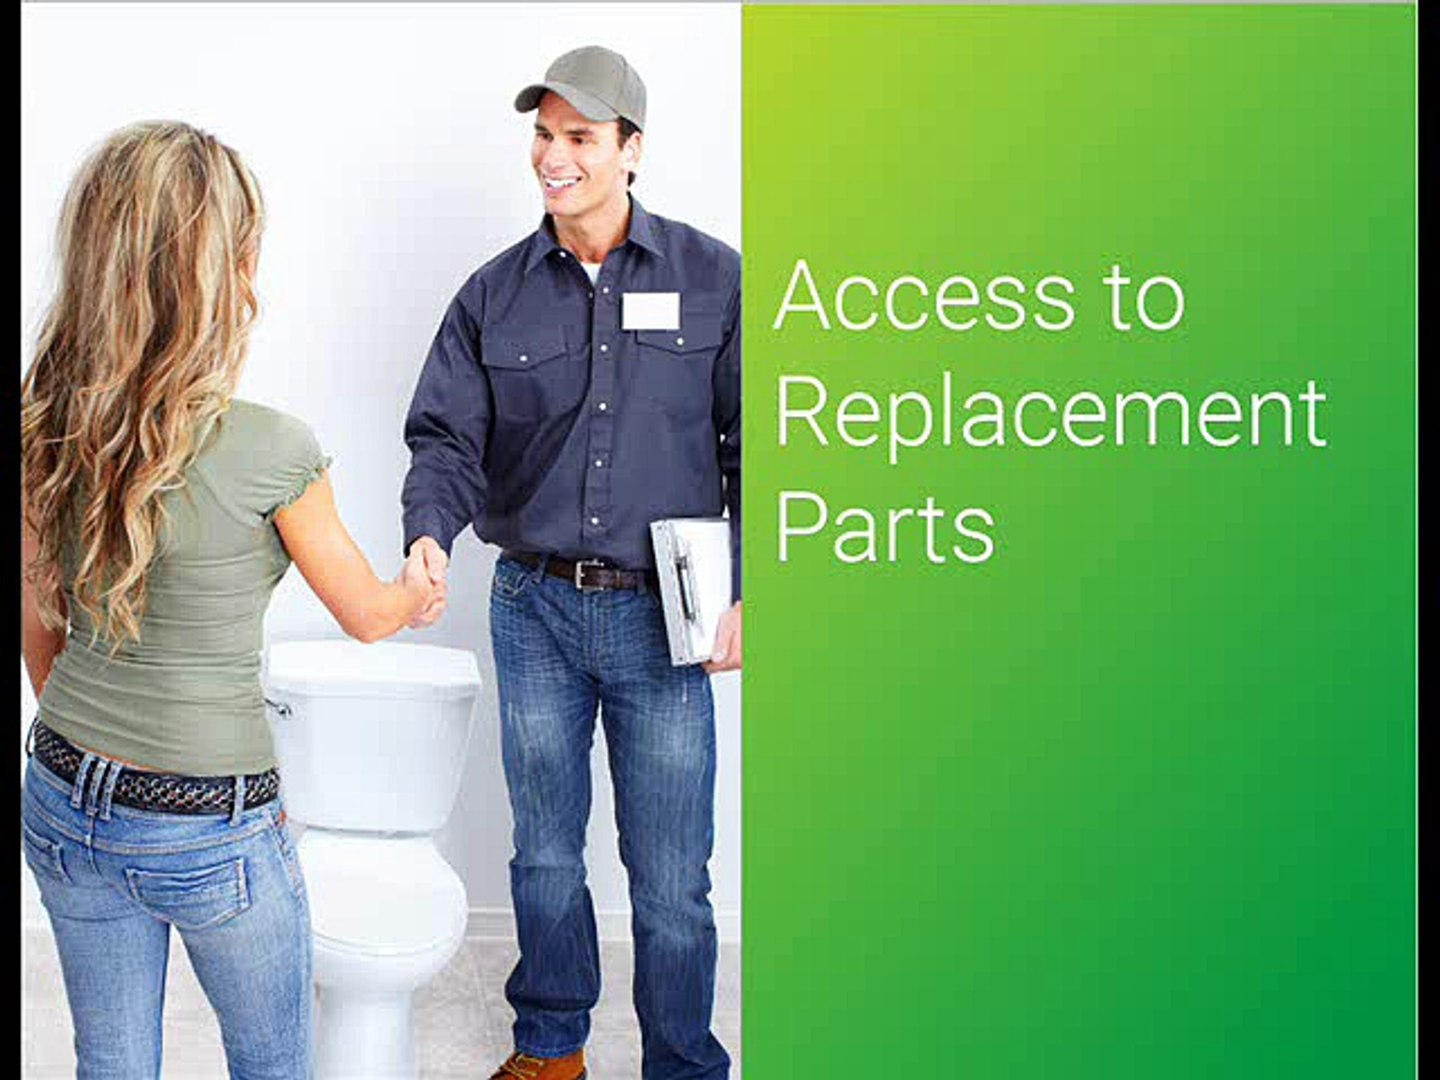 Woodland Hills Appliance Repair Experts, (818) 658-5533